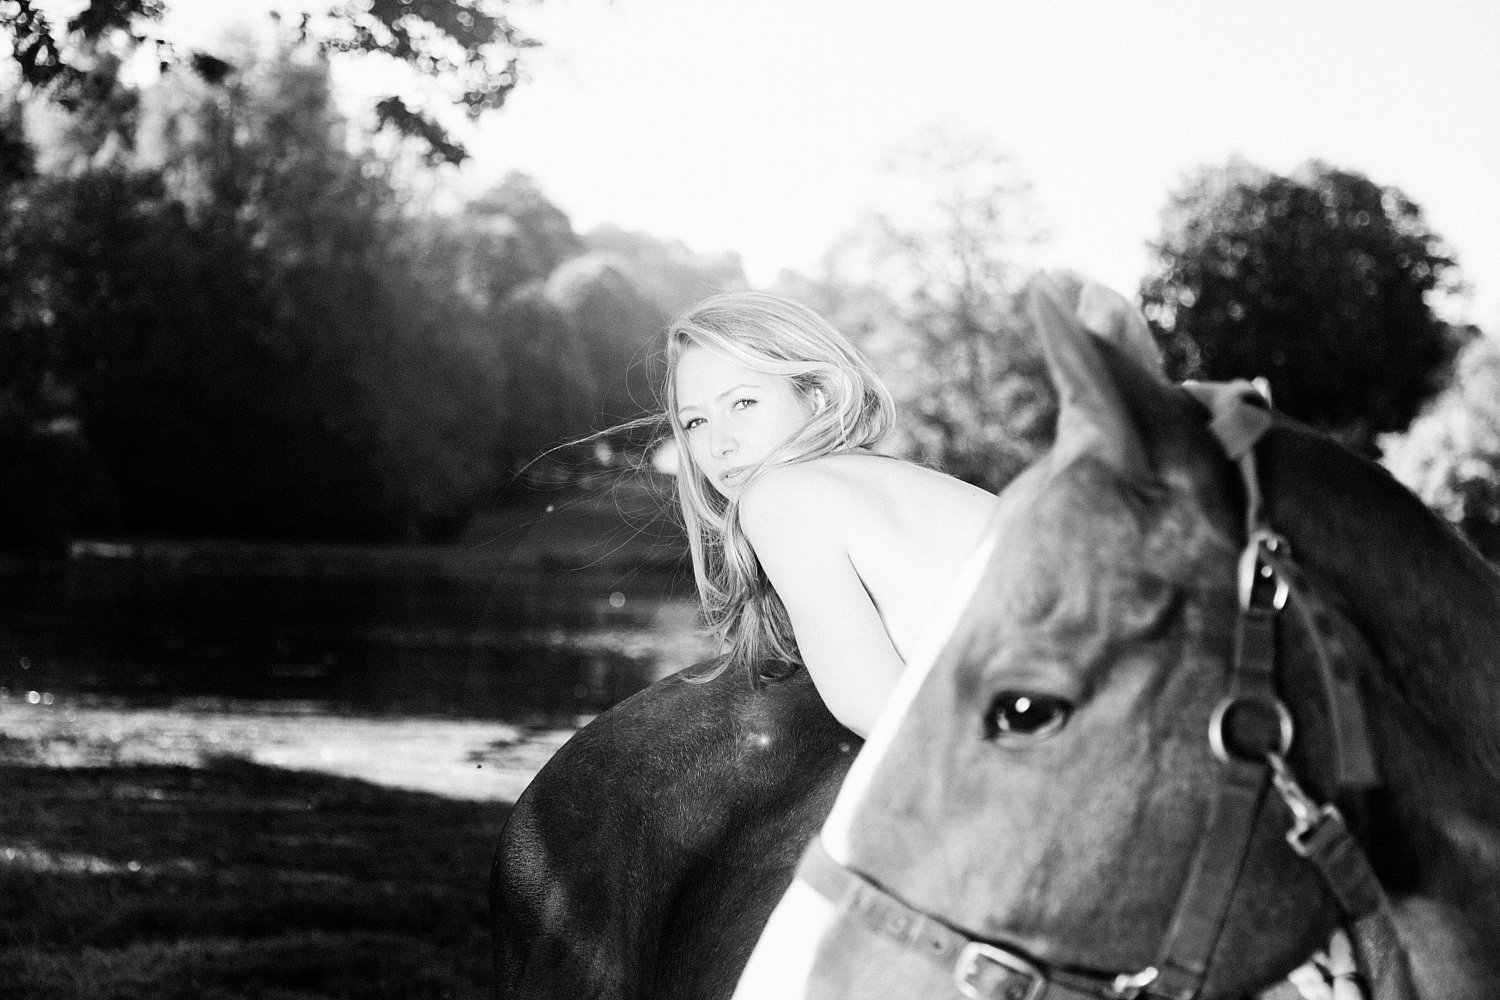 04-lifestyle-photography-equestrian-horse-polo-portrait-mat-smith-photography.jpg